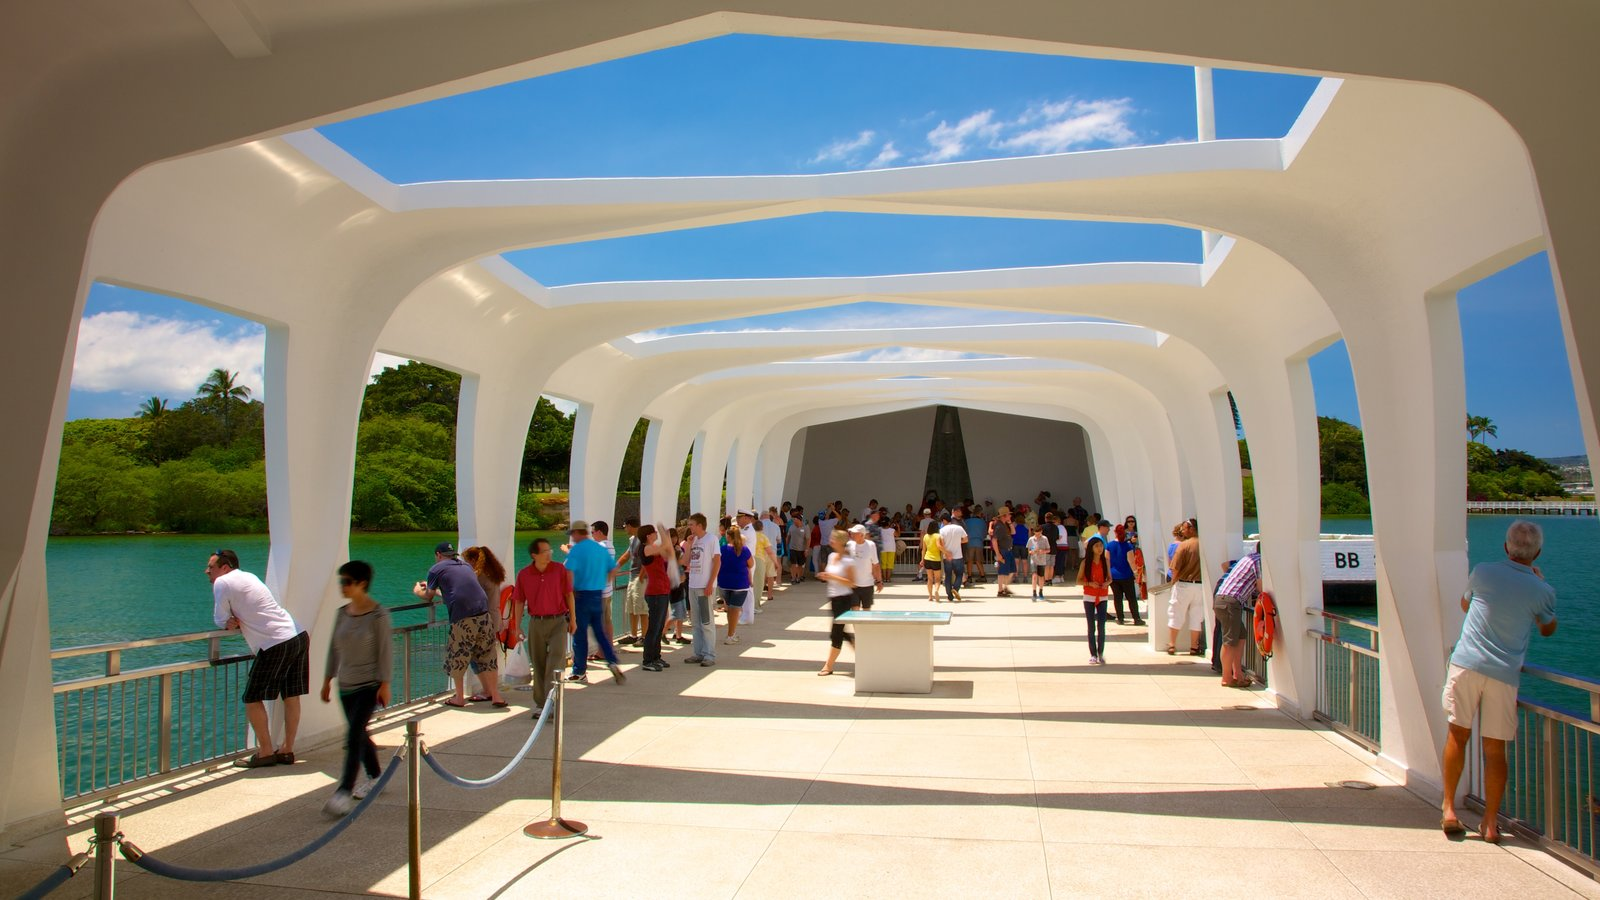 USS Arizona Memorial featuring views as well as a large group of people